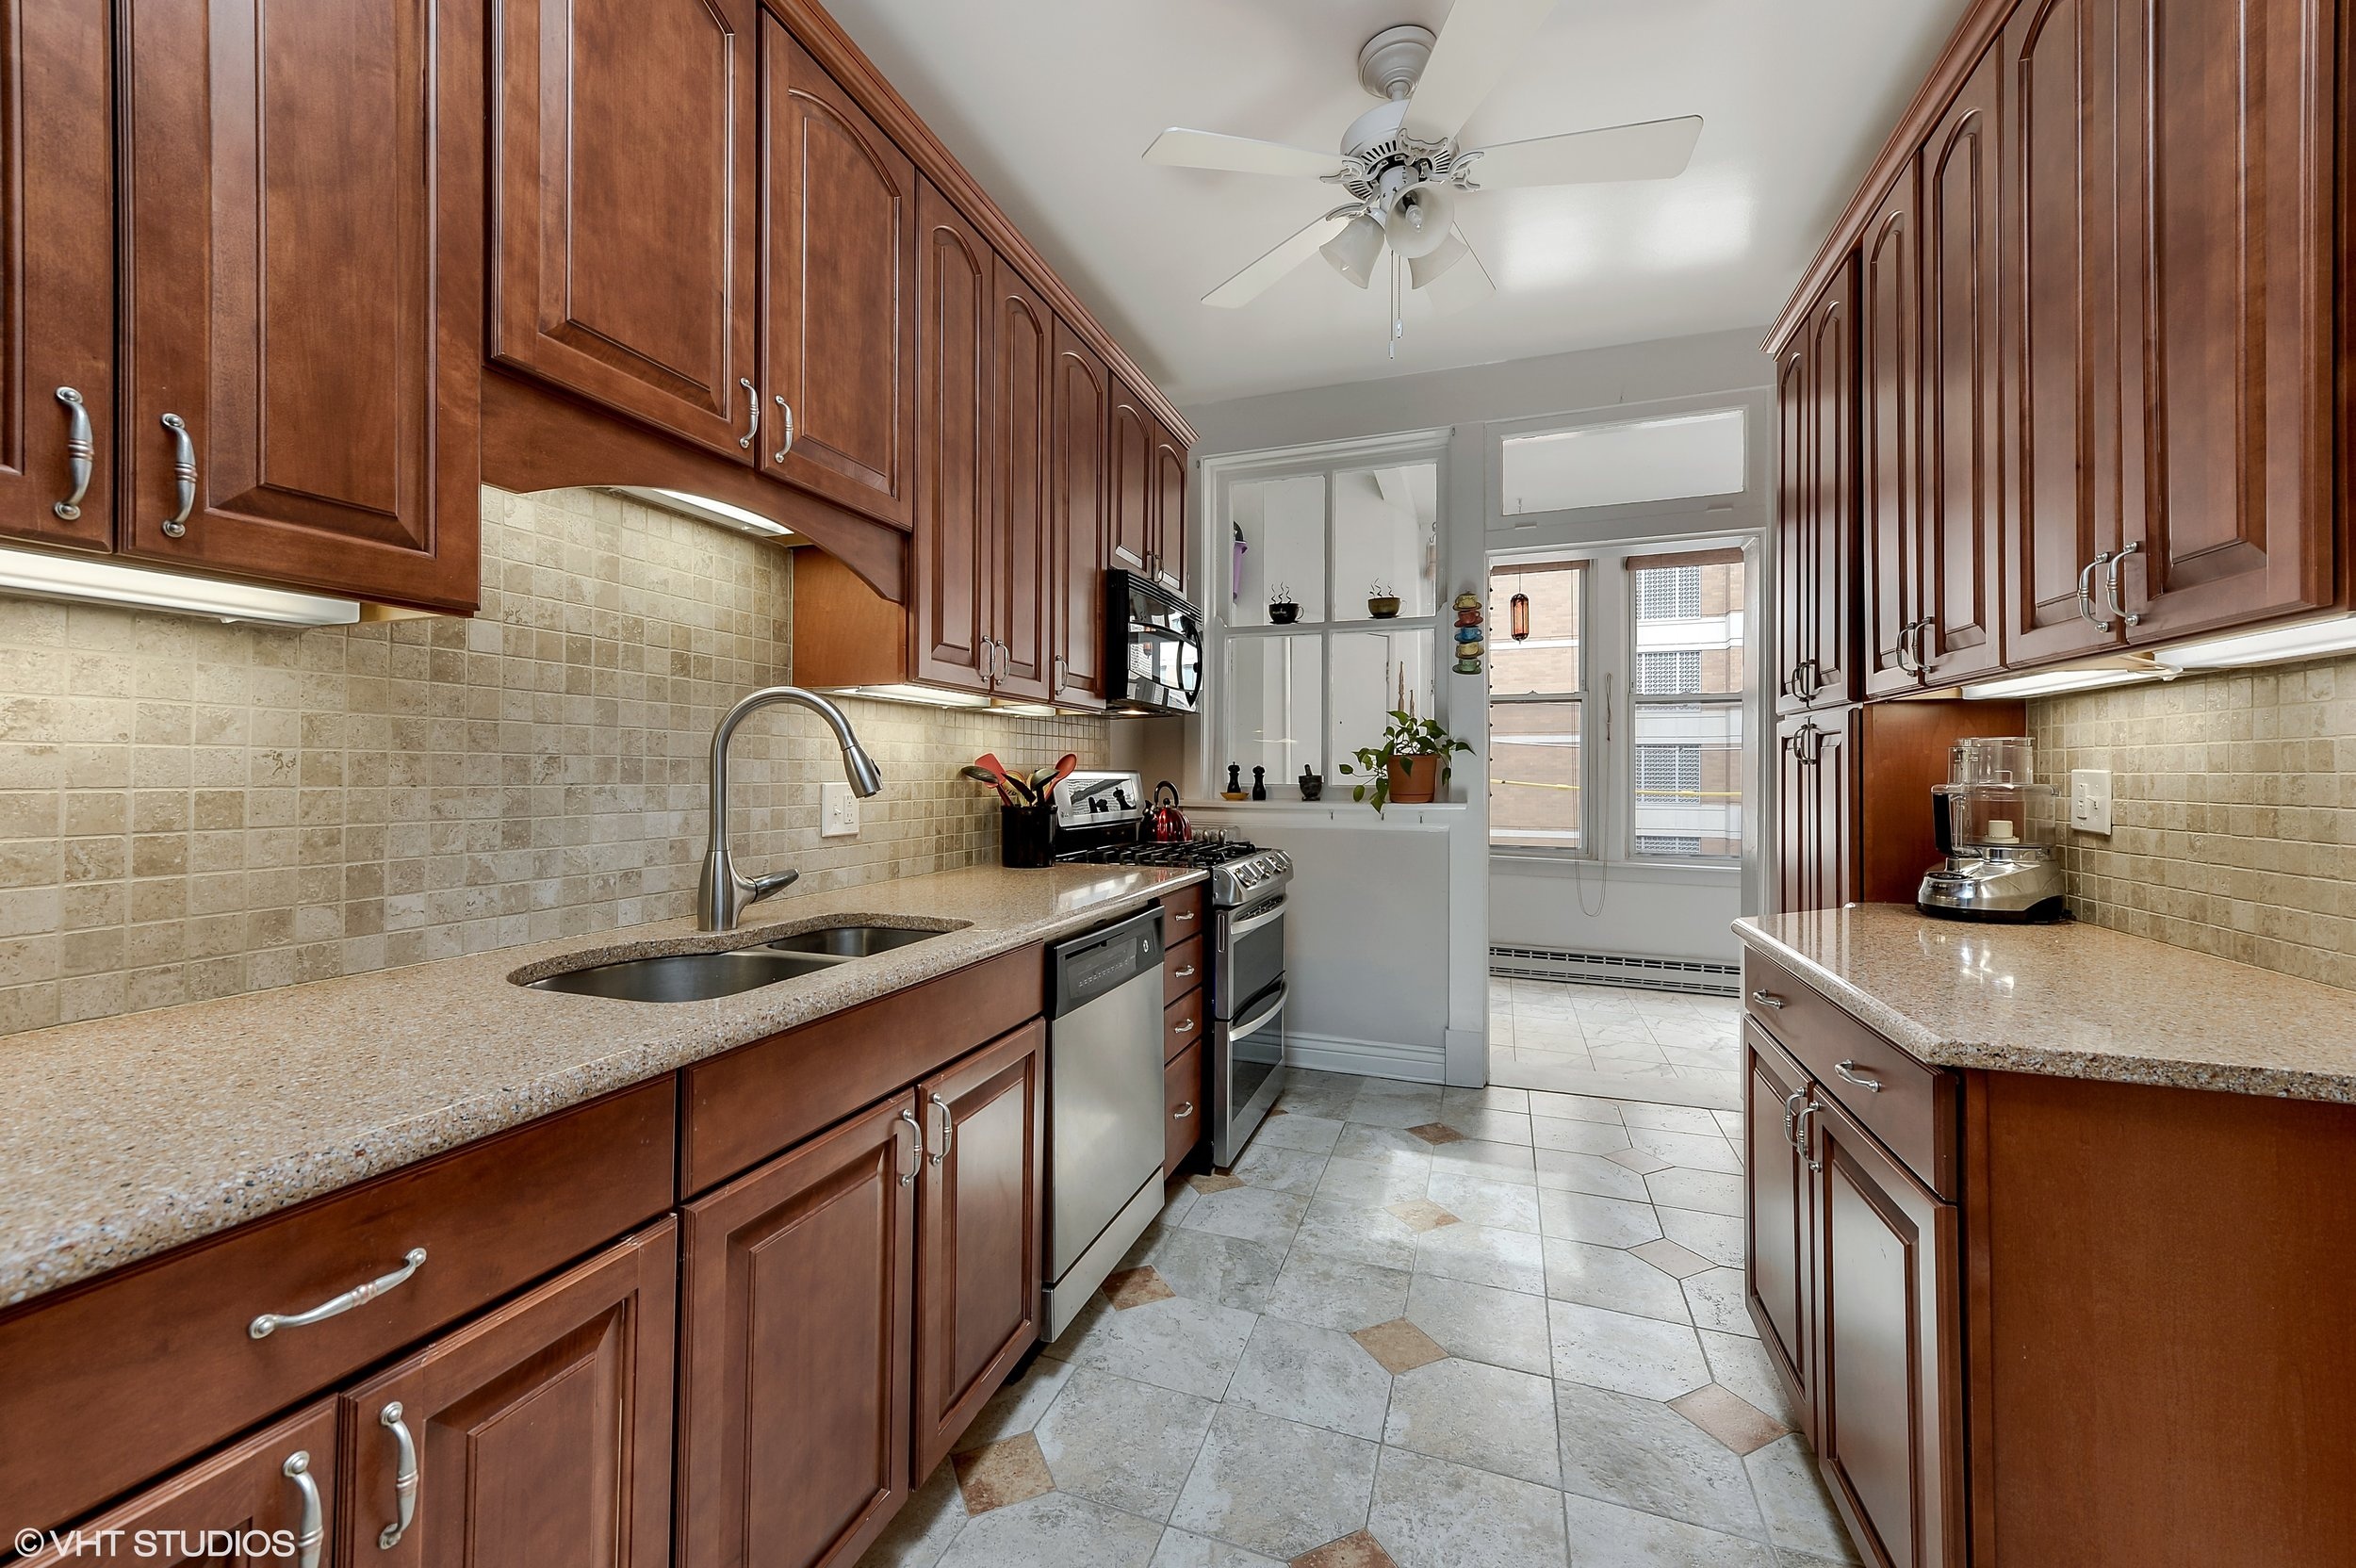 05_922WestWinonaSt_3E_177_Kitchen_HiRes.jpg